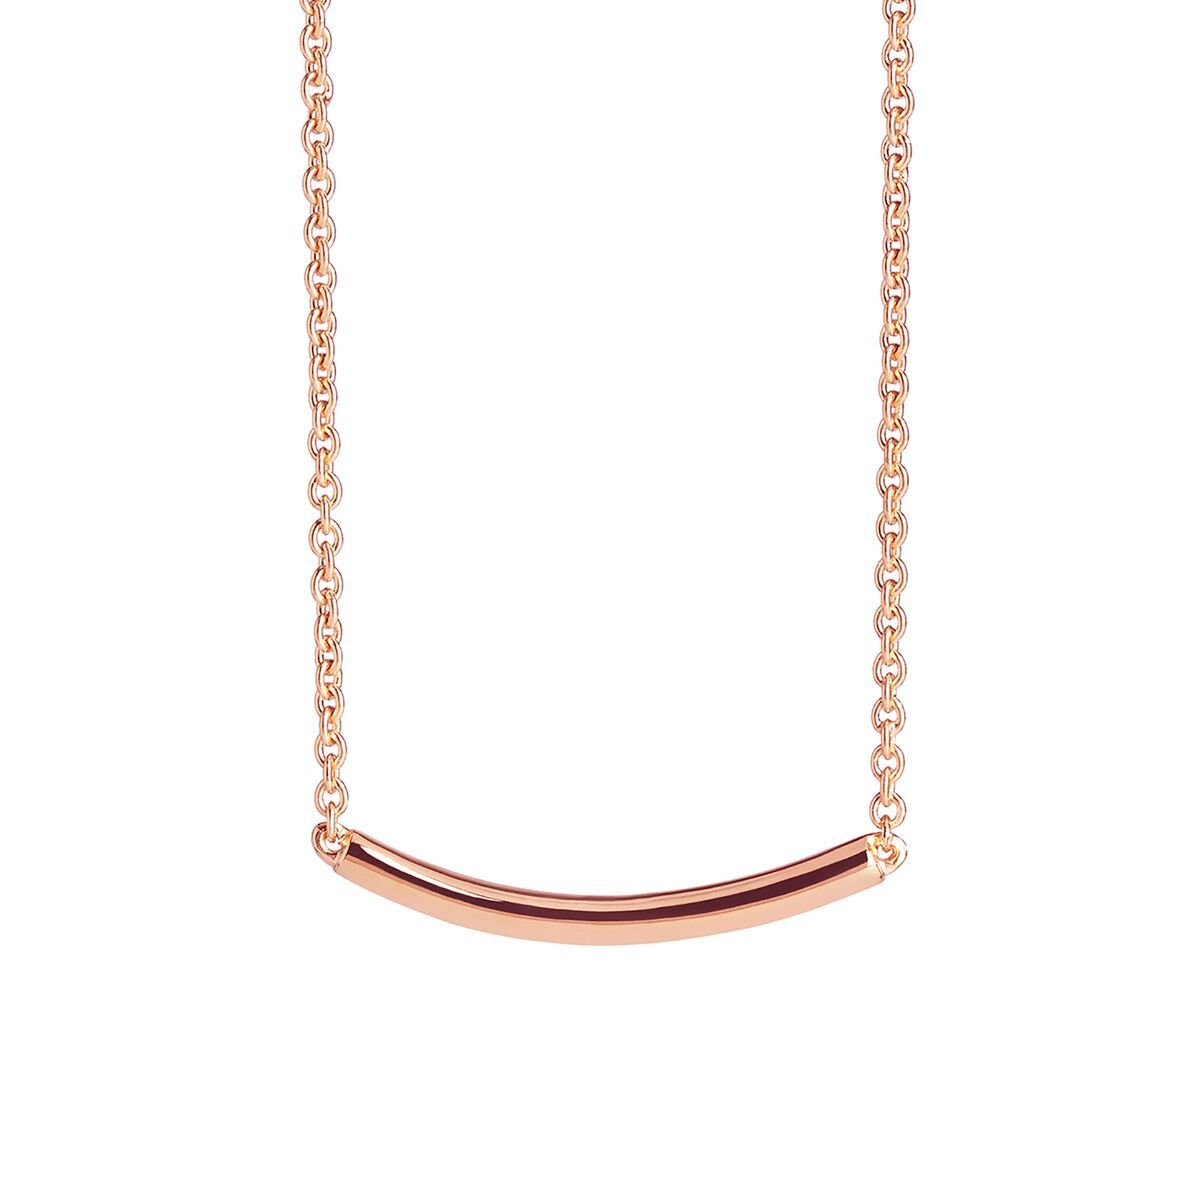 Muru Silver Arc Necklace in Rose Gold Vermeil Jewellery Muru